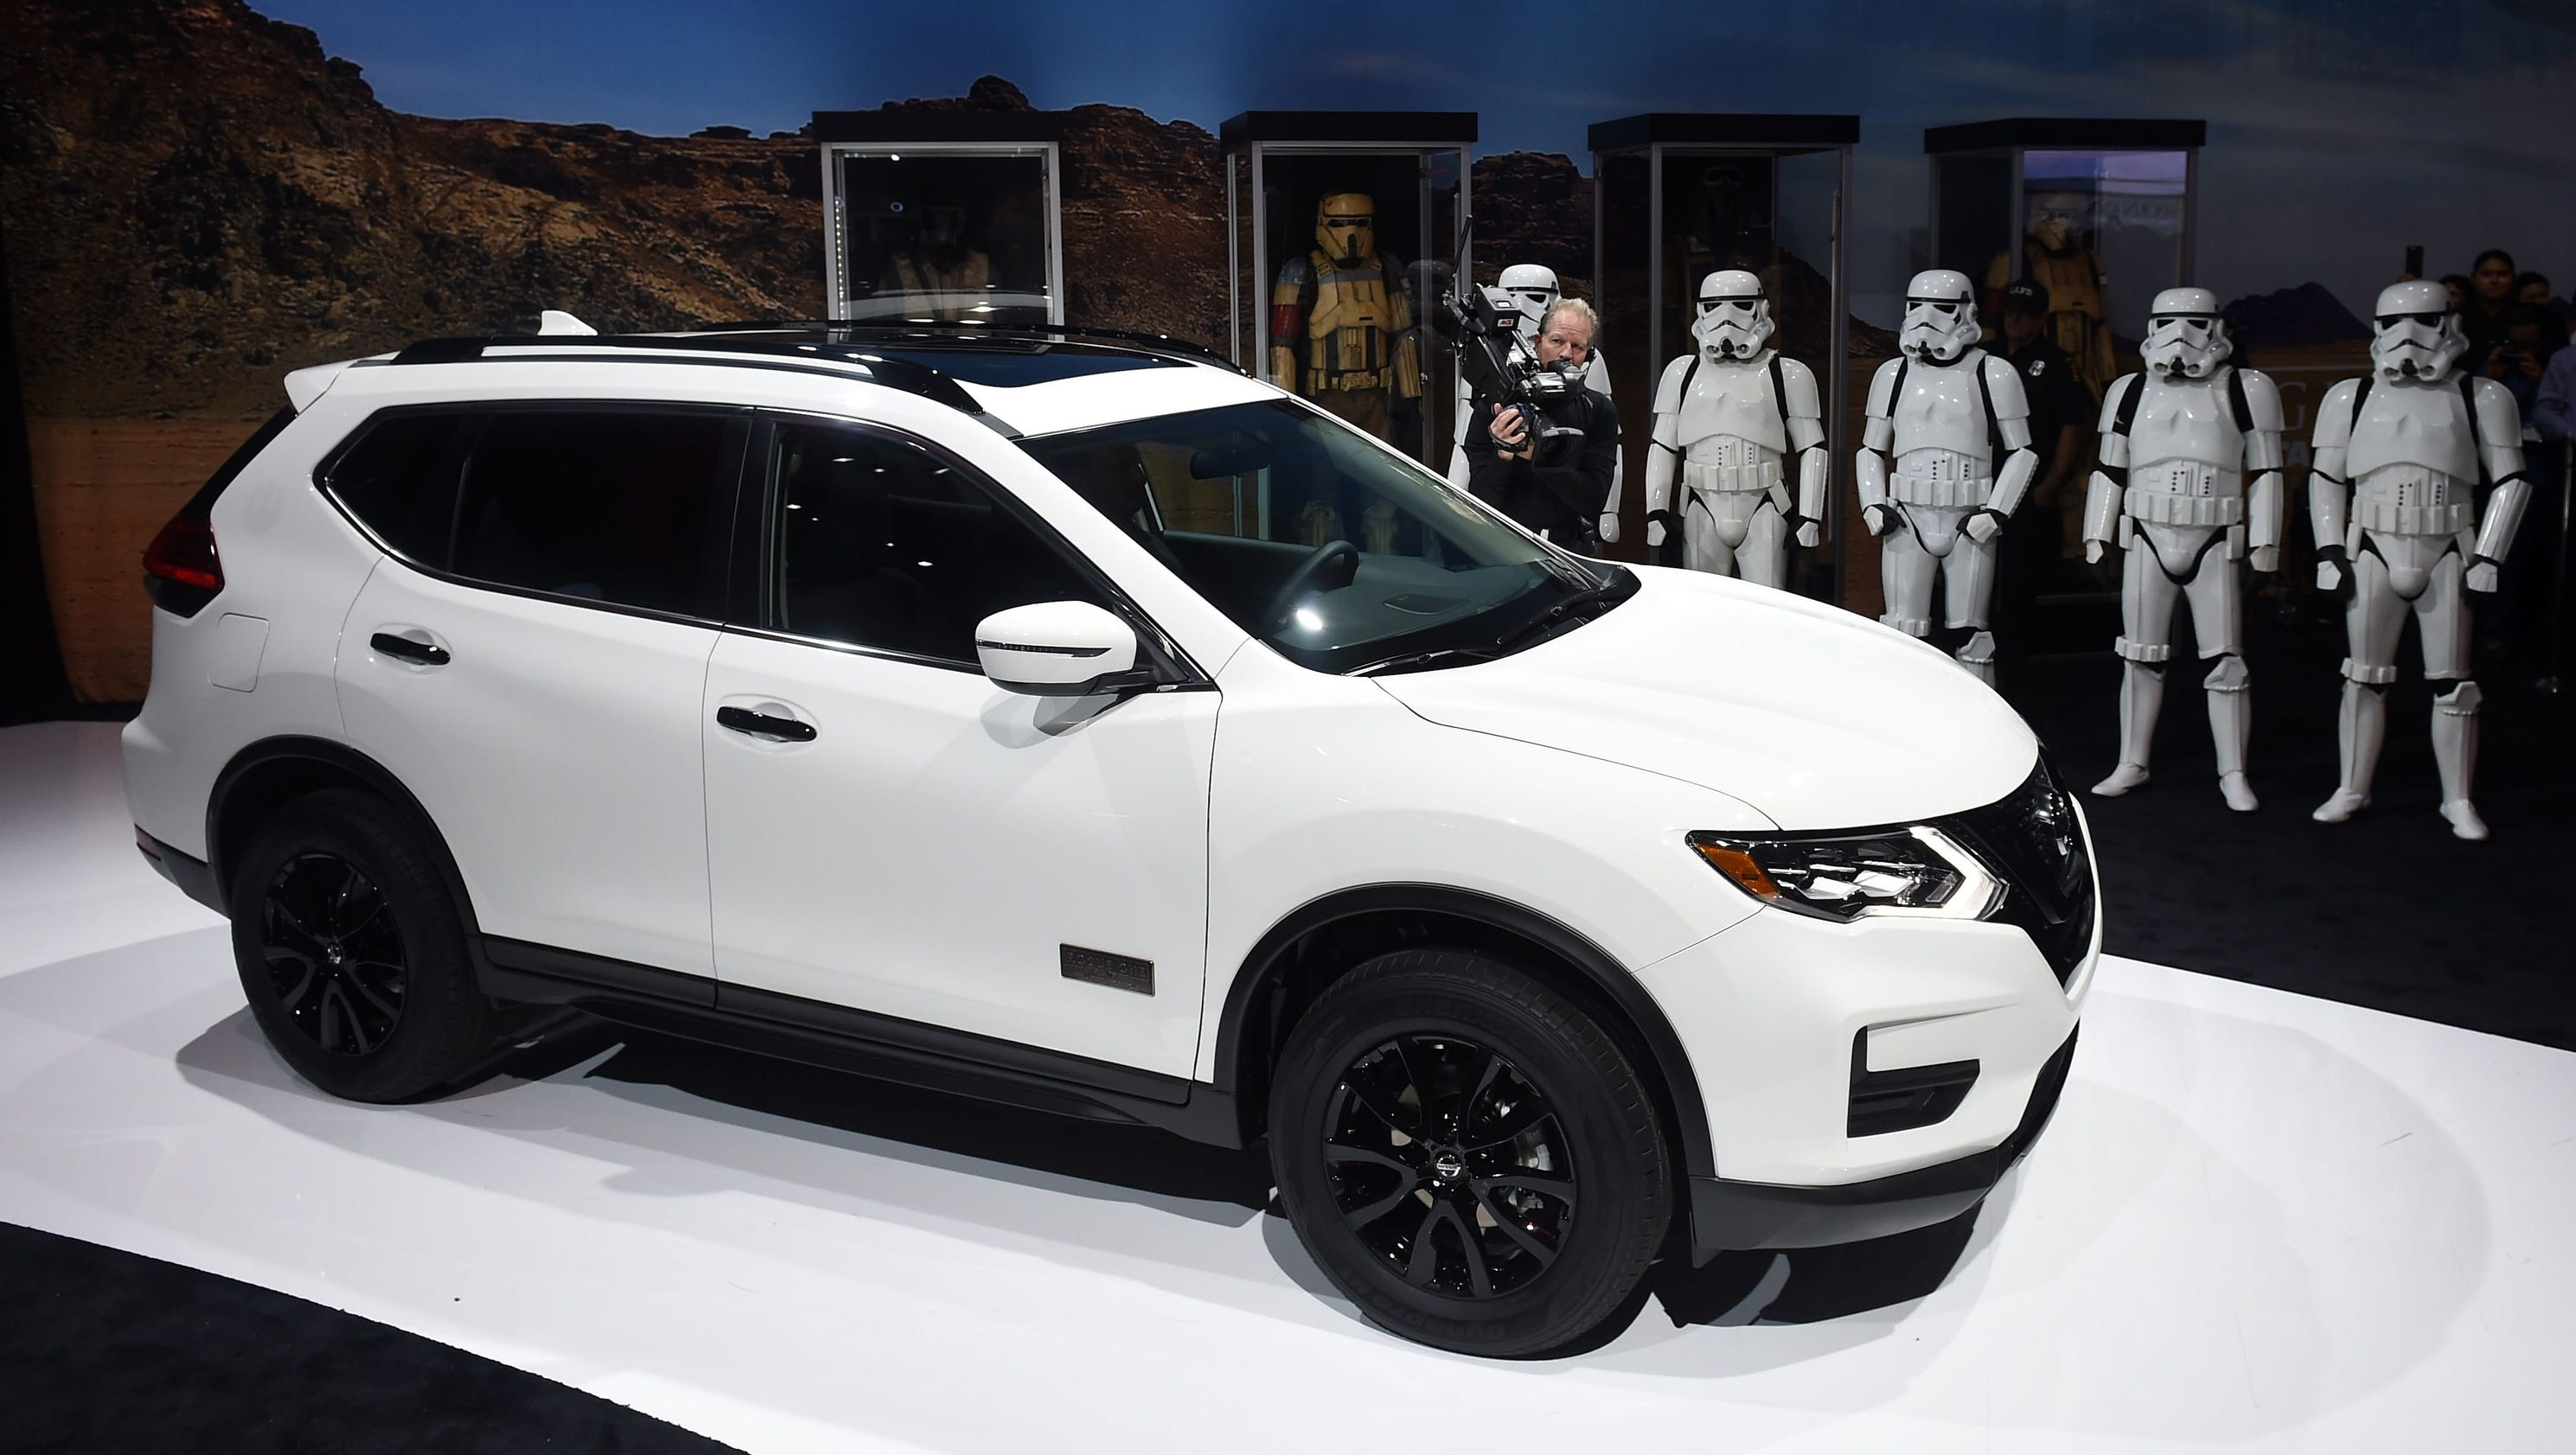 Nissan create 'Rogue One' SUV for Star Wars fans